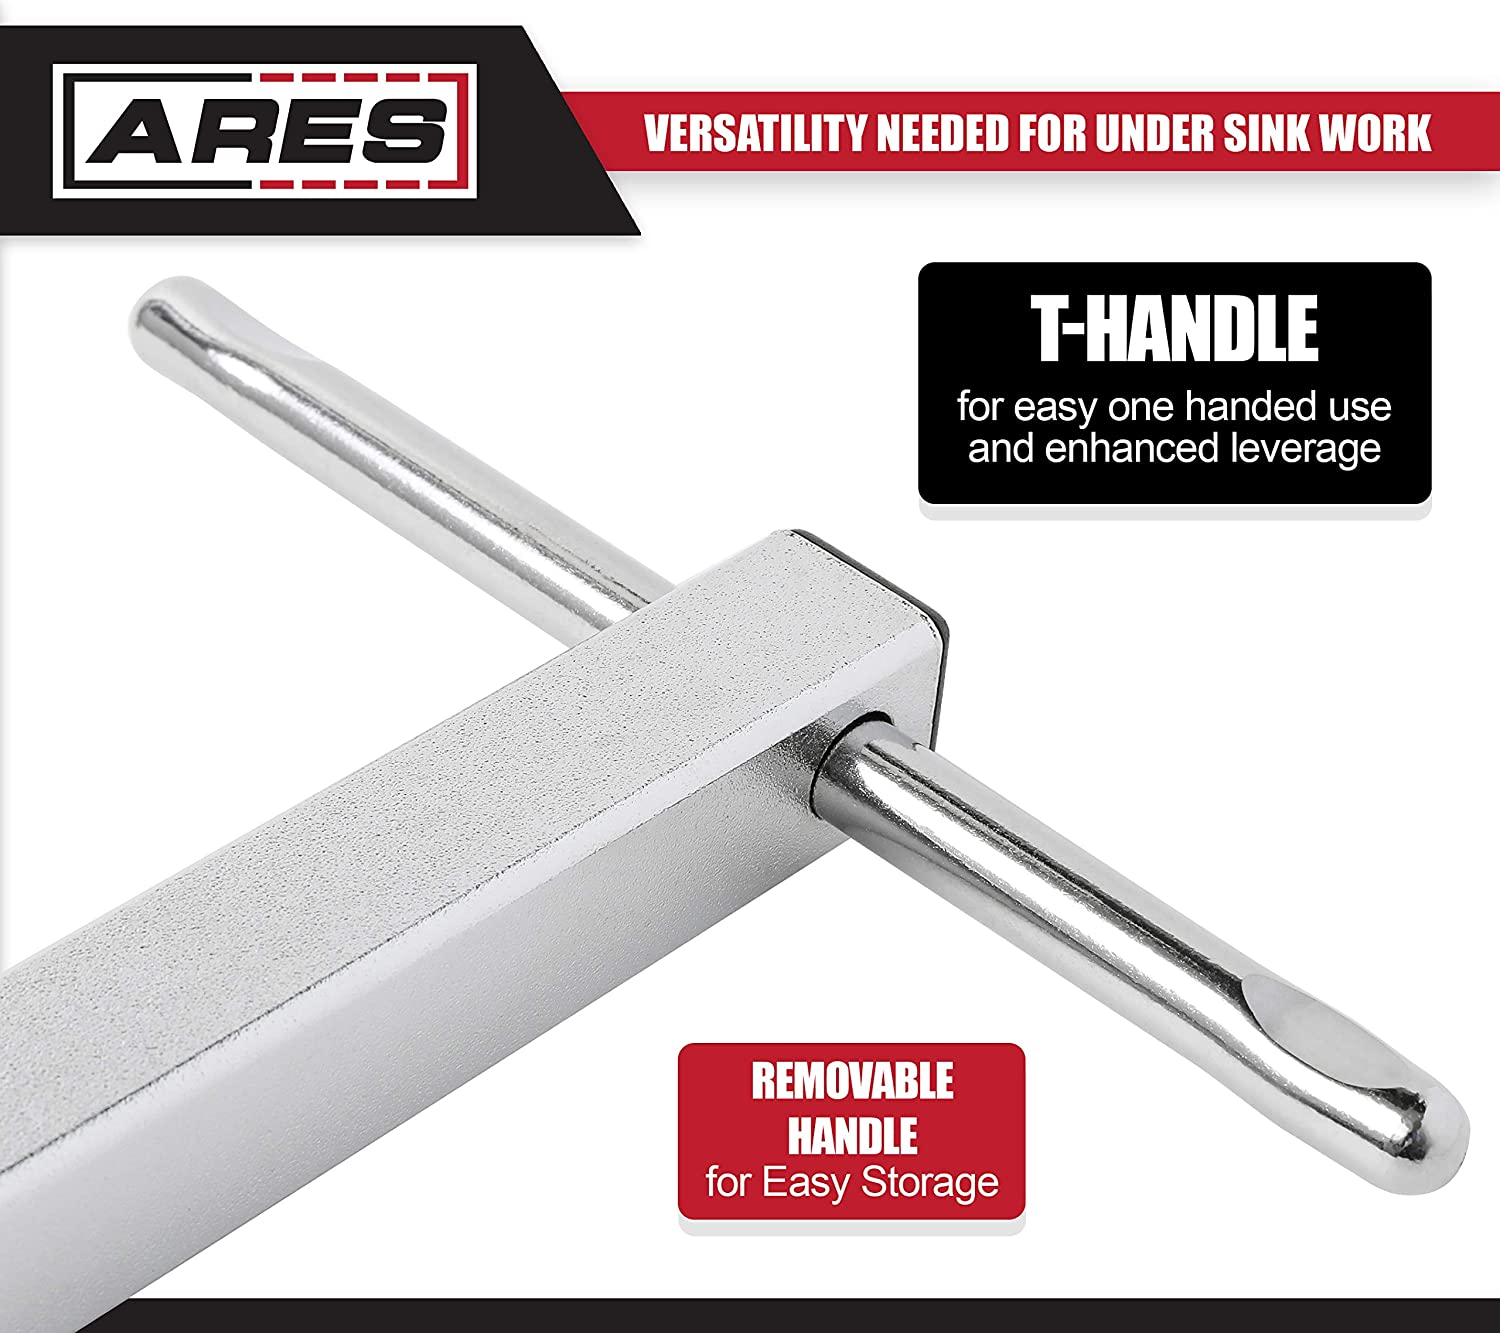 Basin Wrenches Increase Access in Tight Spaces ARES 33004-11-Inch Basin Wrench with Adjustable 3//8-Inch to 1 1//4-Inch Jaw